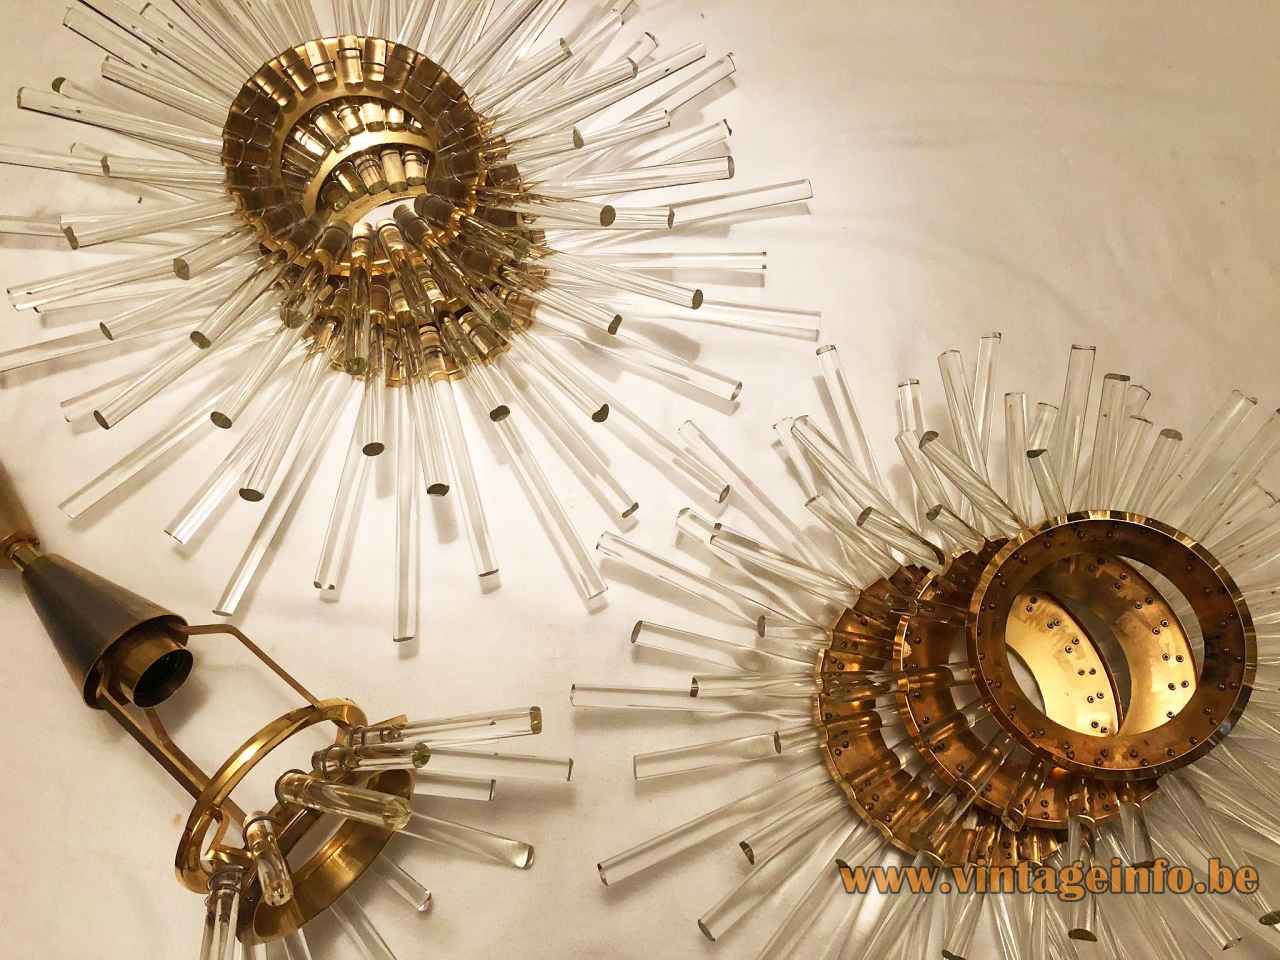 1960s Bakalowits Miracle chandelier model 3317 brass globe lampshade sputnik glass rods sunburst lamp Austria parts